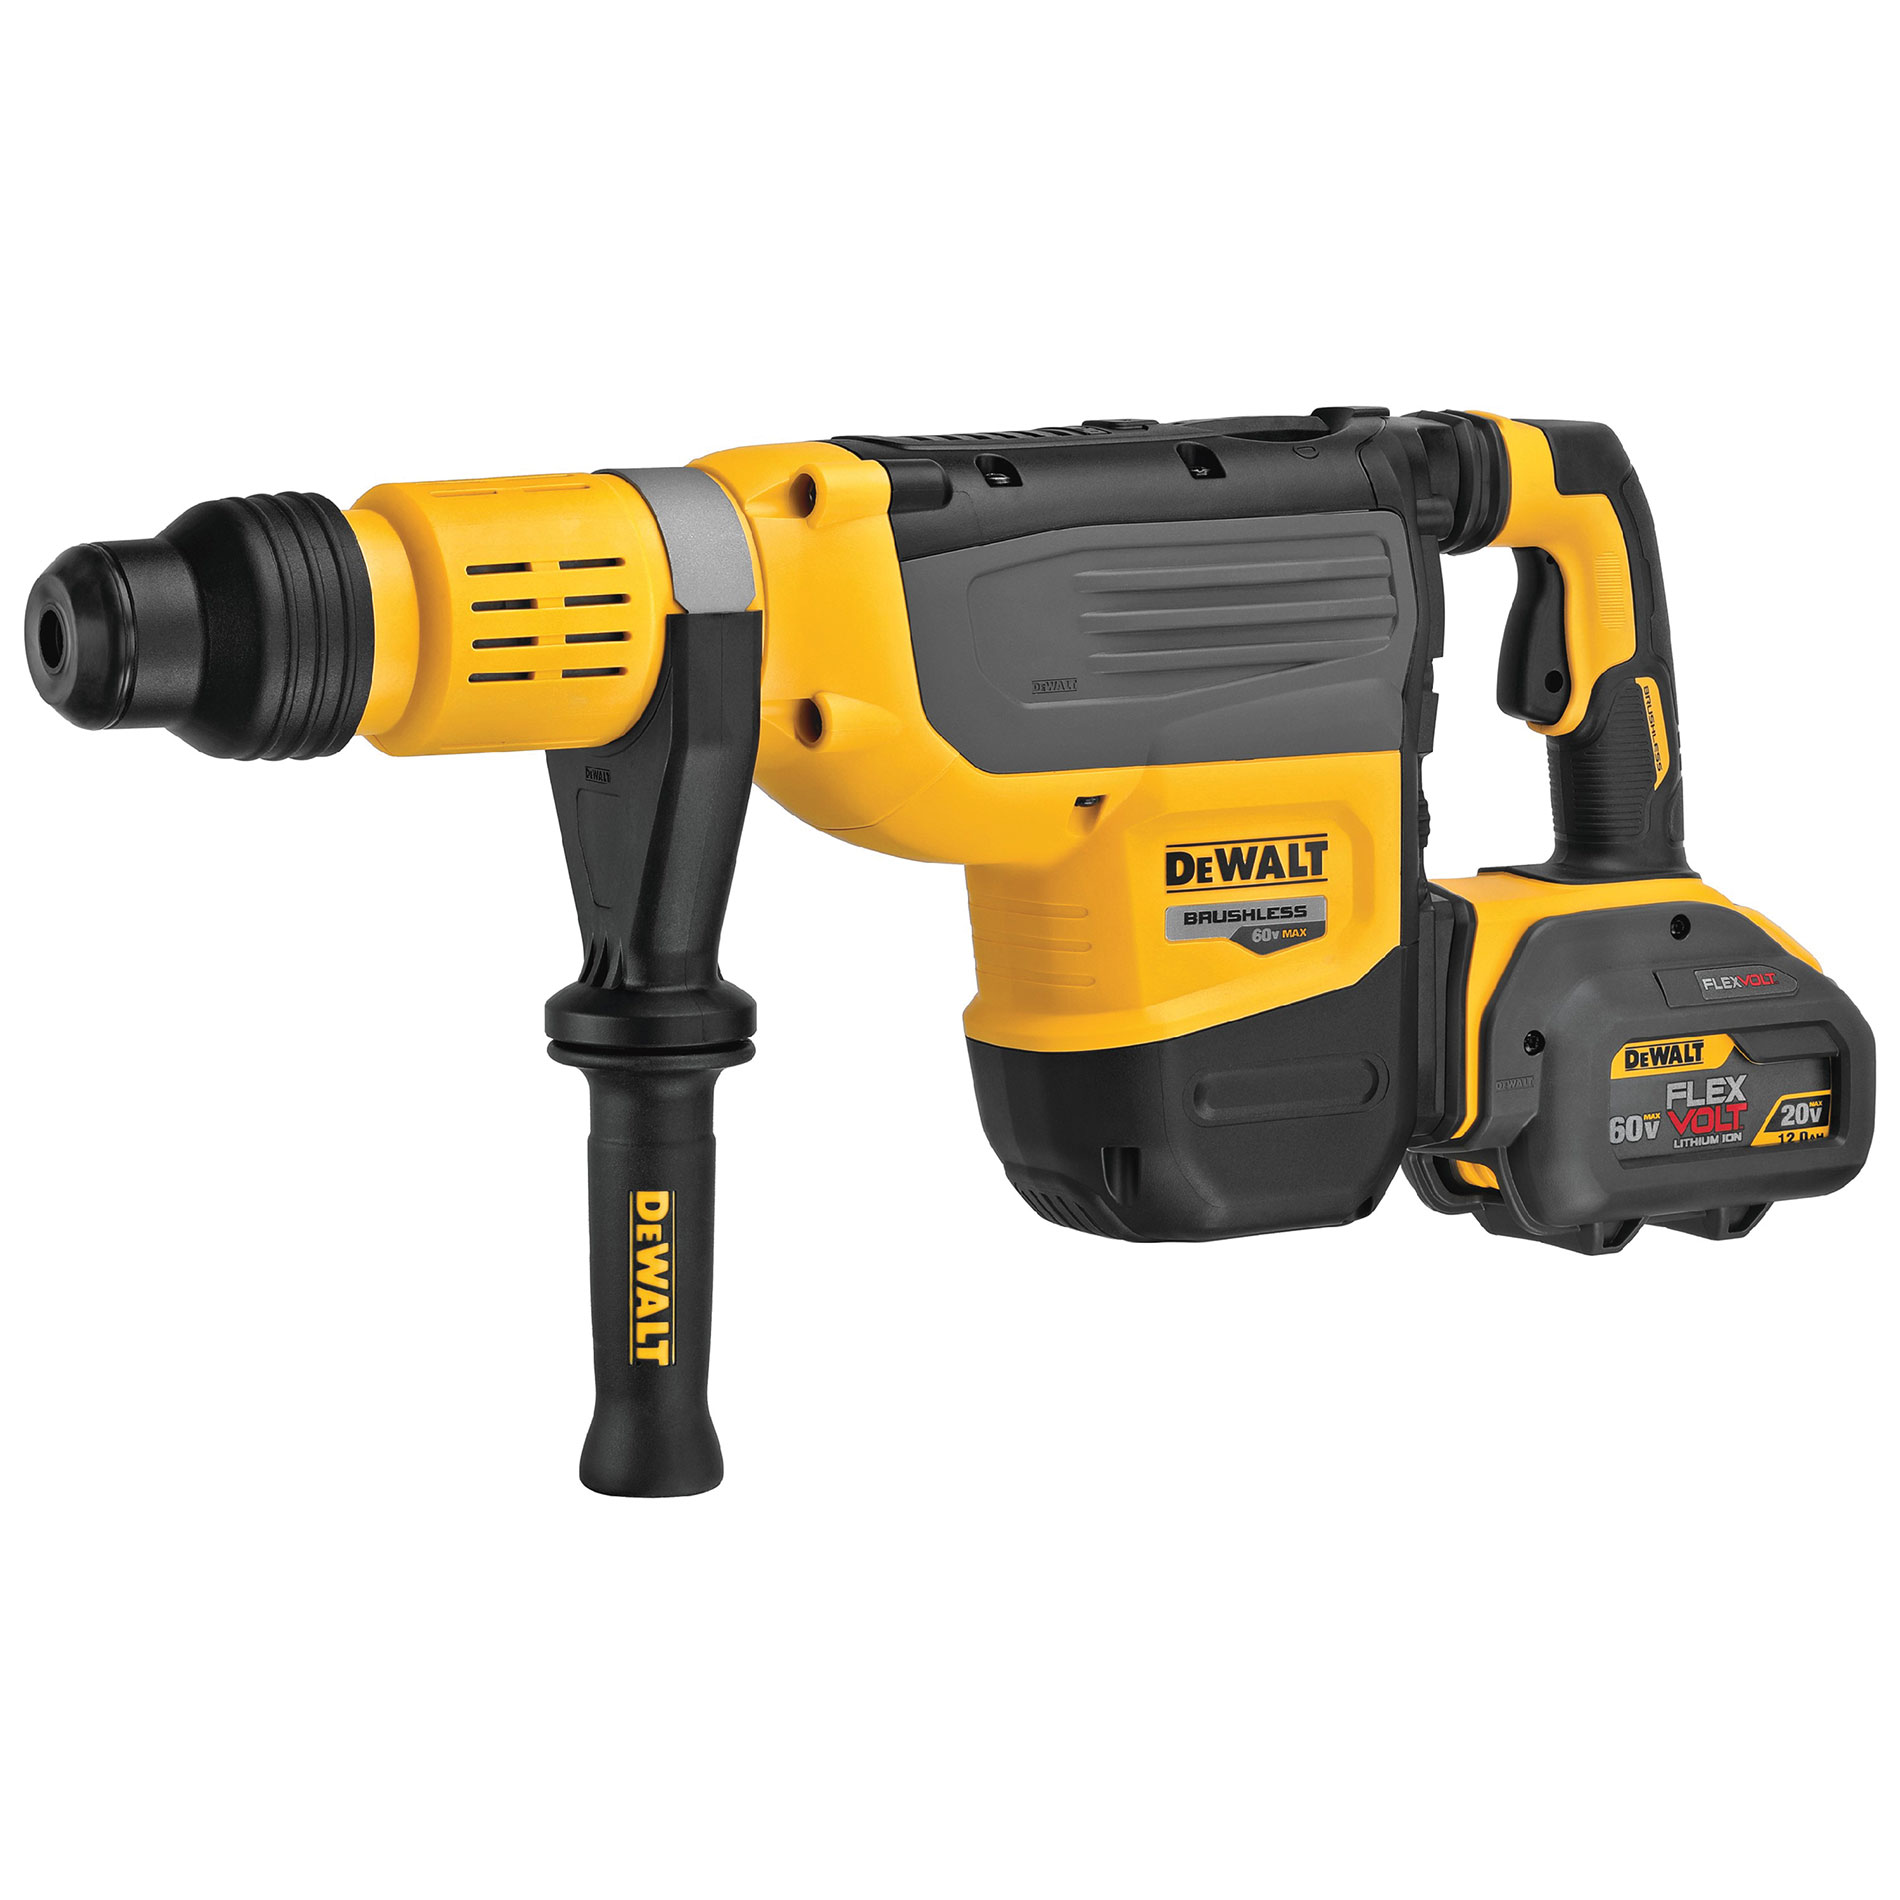 DeWalt brushless motor flex volt demo hammer